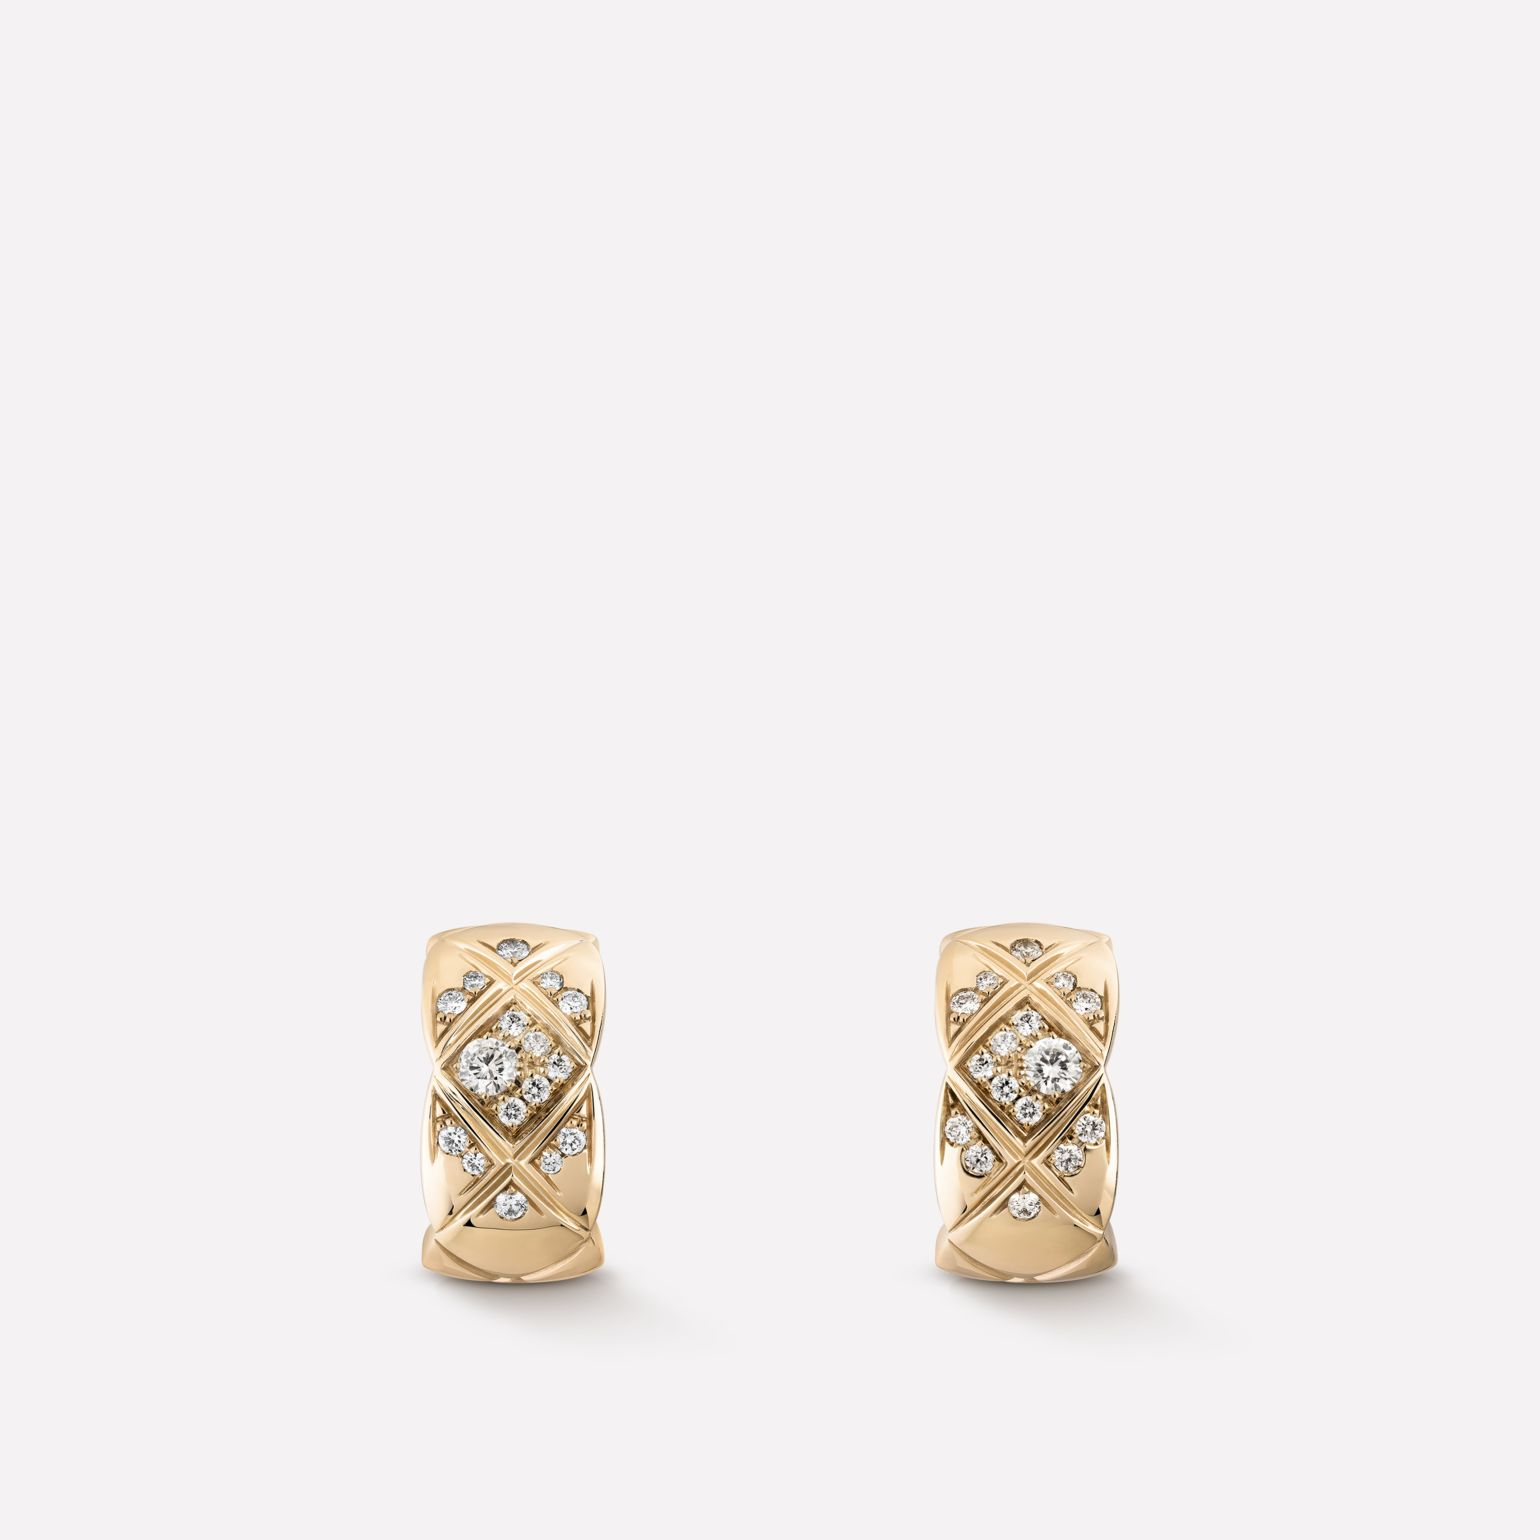 Coco Crush earrings Quilted motif, 18K BEIGE GOLD, diamonds